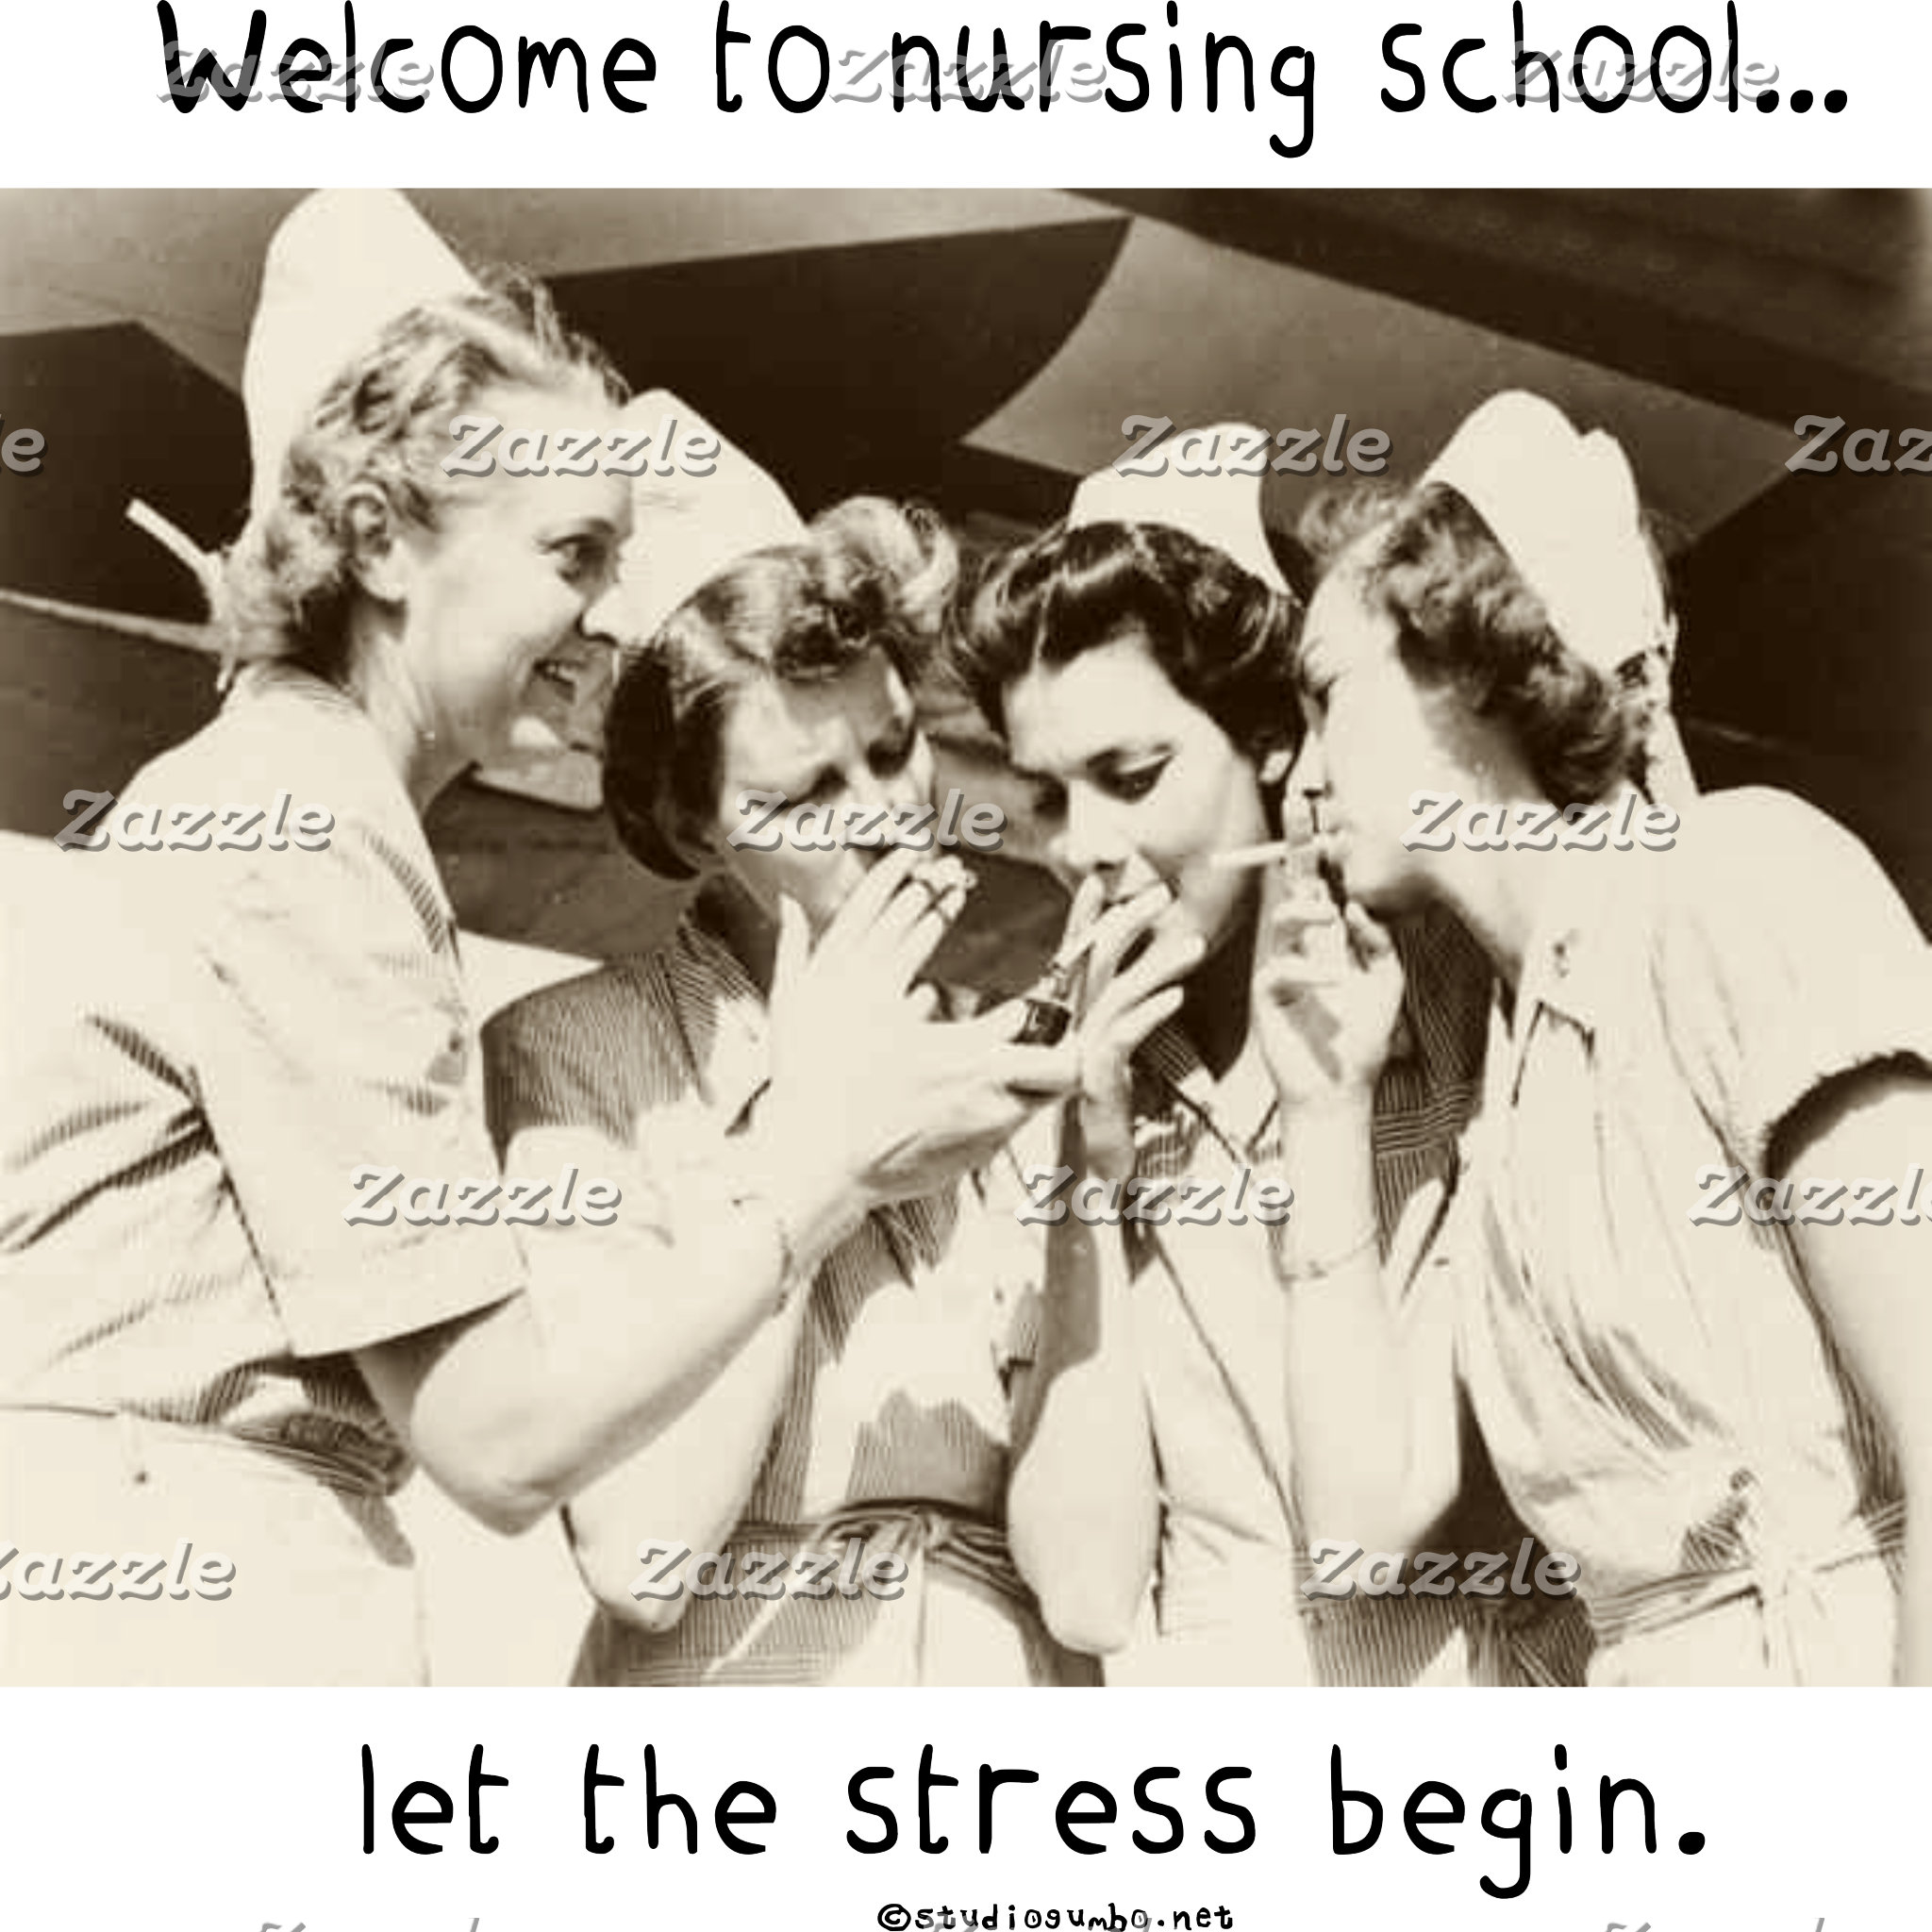 Nursing School - Let the Stress Begin